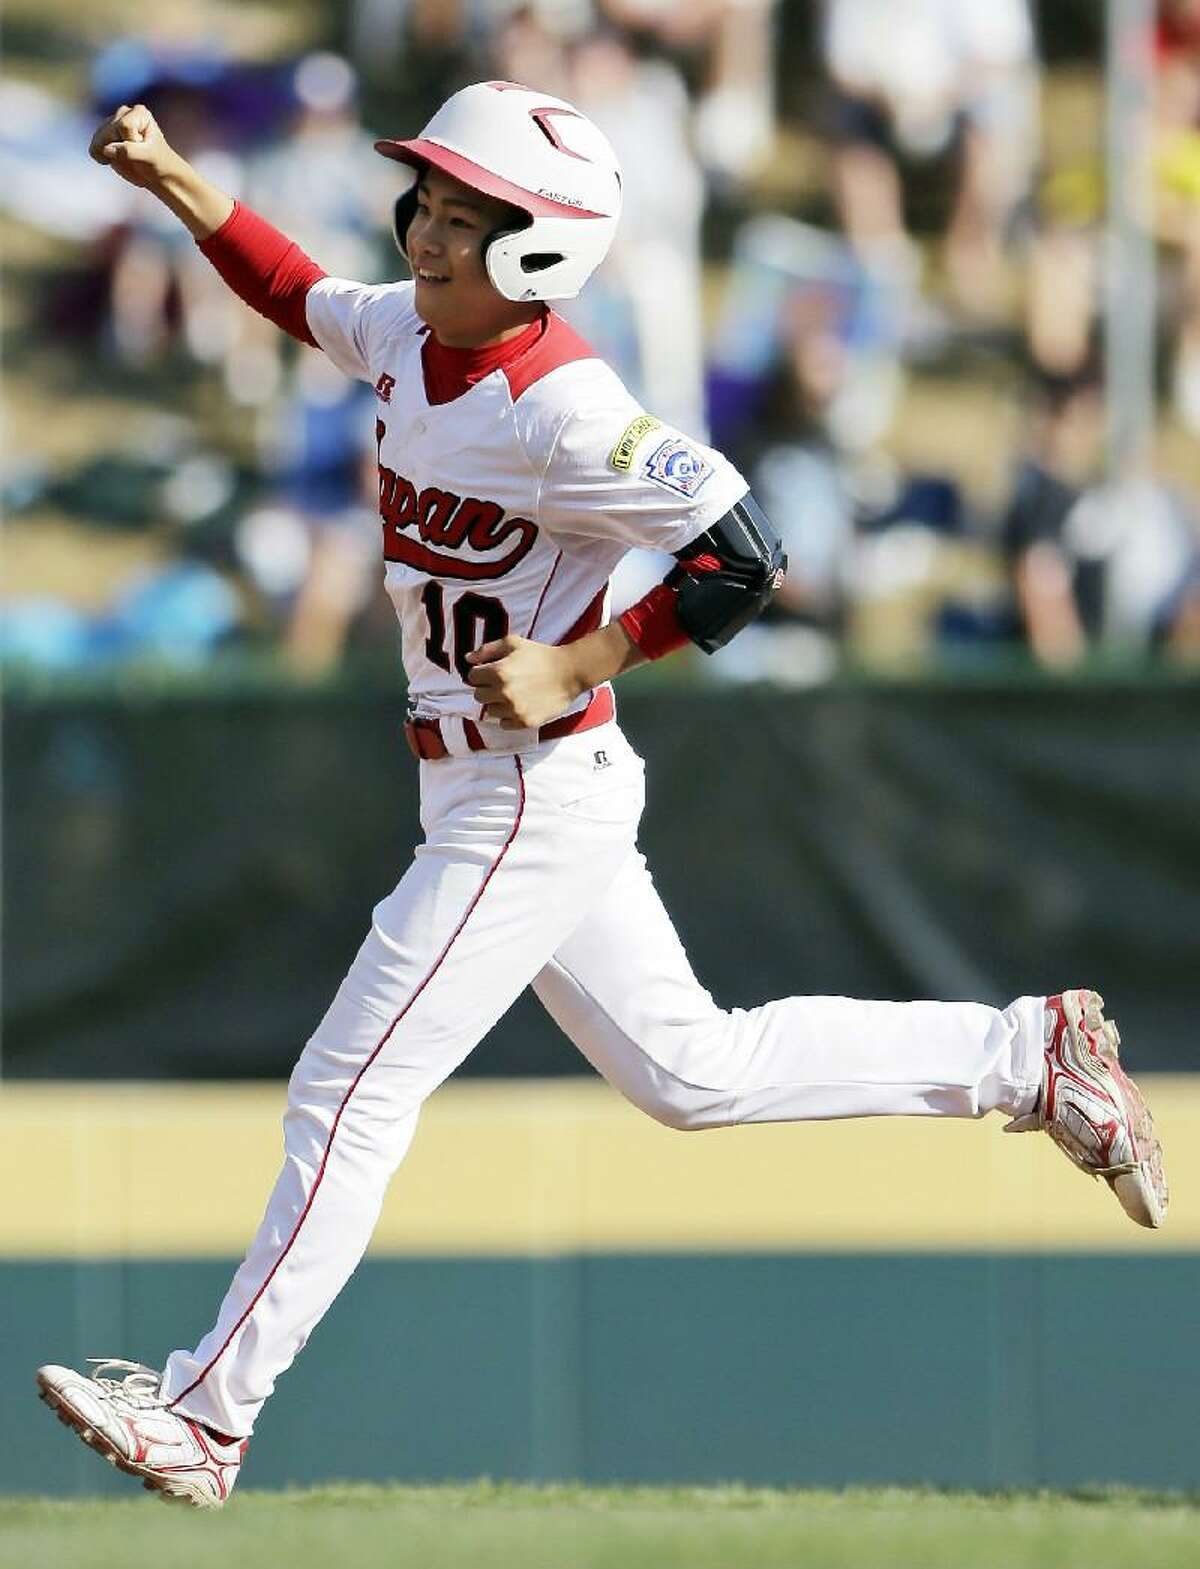 ASSOCIATED PRESS Tokyo, Japan's Noriatsu Osaka celebrates as he rounds the bases after hitting a two-run home run in the fifth inning of the Little League World Series championship baseball game against Goodlettsville, Tenn., Sunday in South Williamsport, Pa. Japan won 12-2 in five innings.